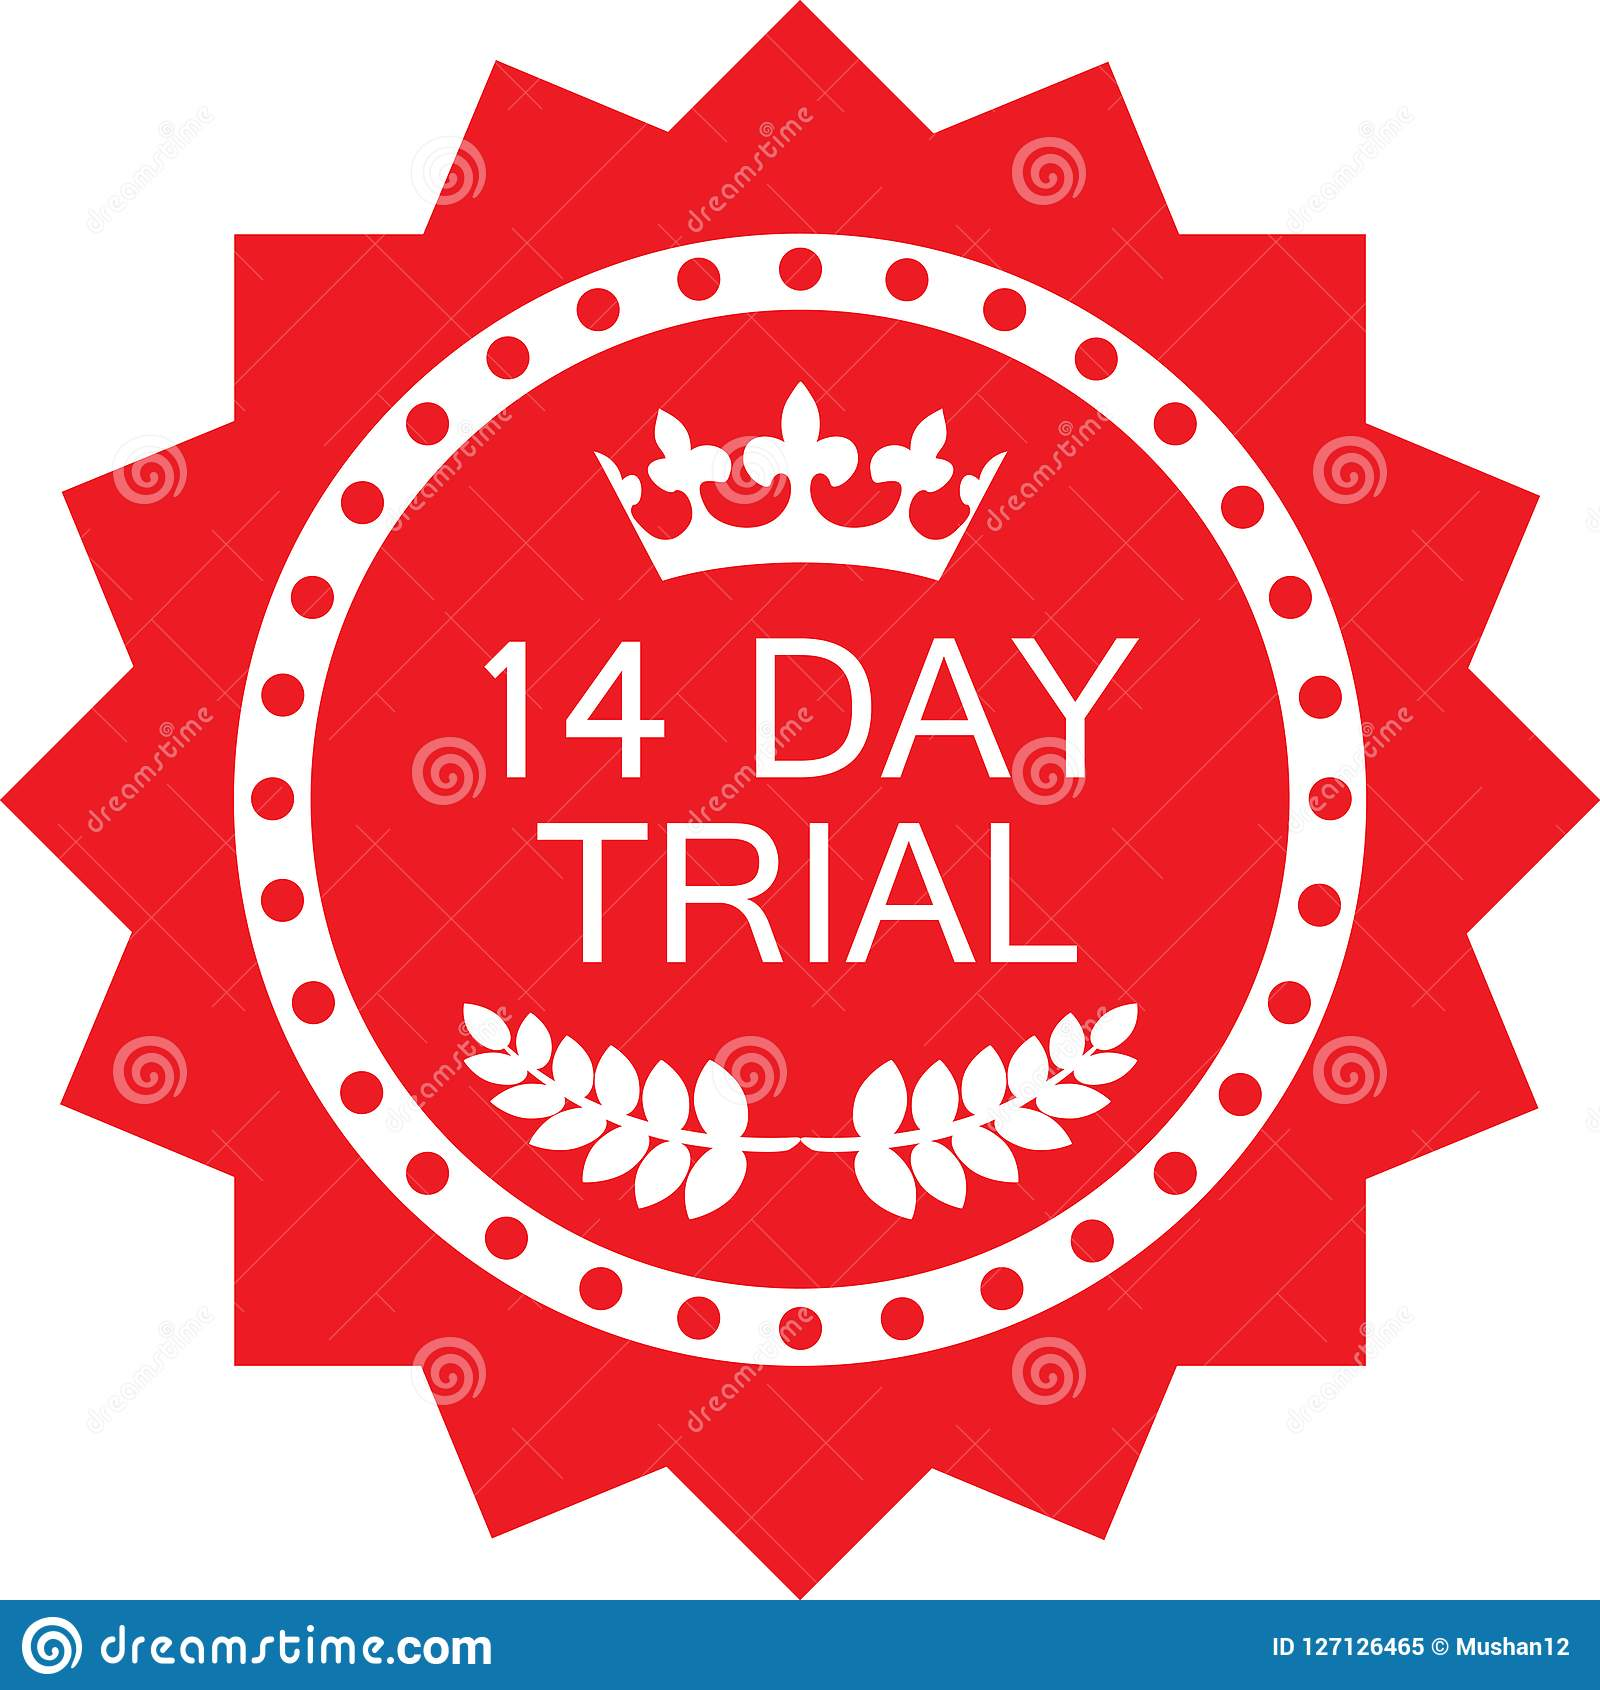 Fourteen Day Trial Luxury Red Badge Icon